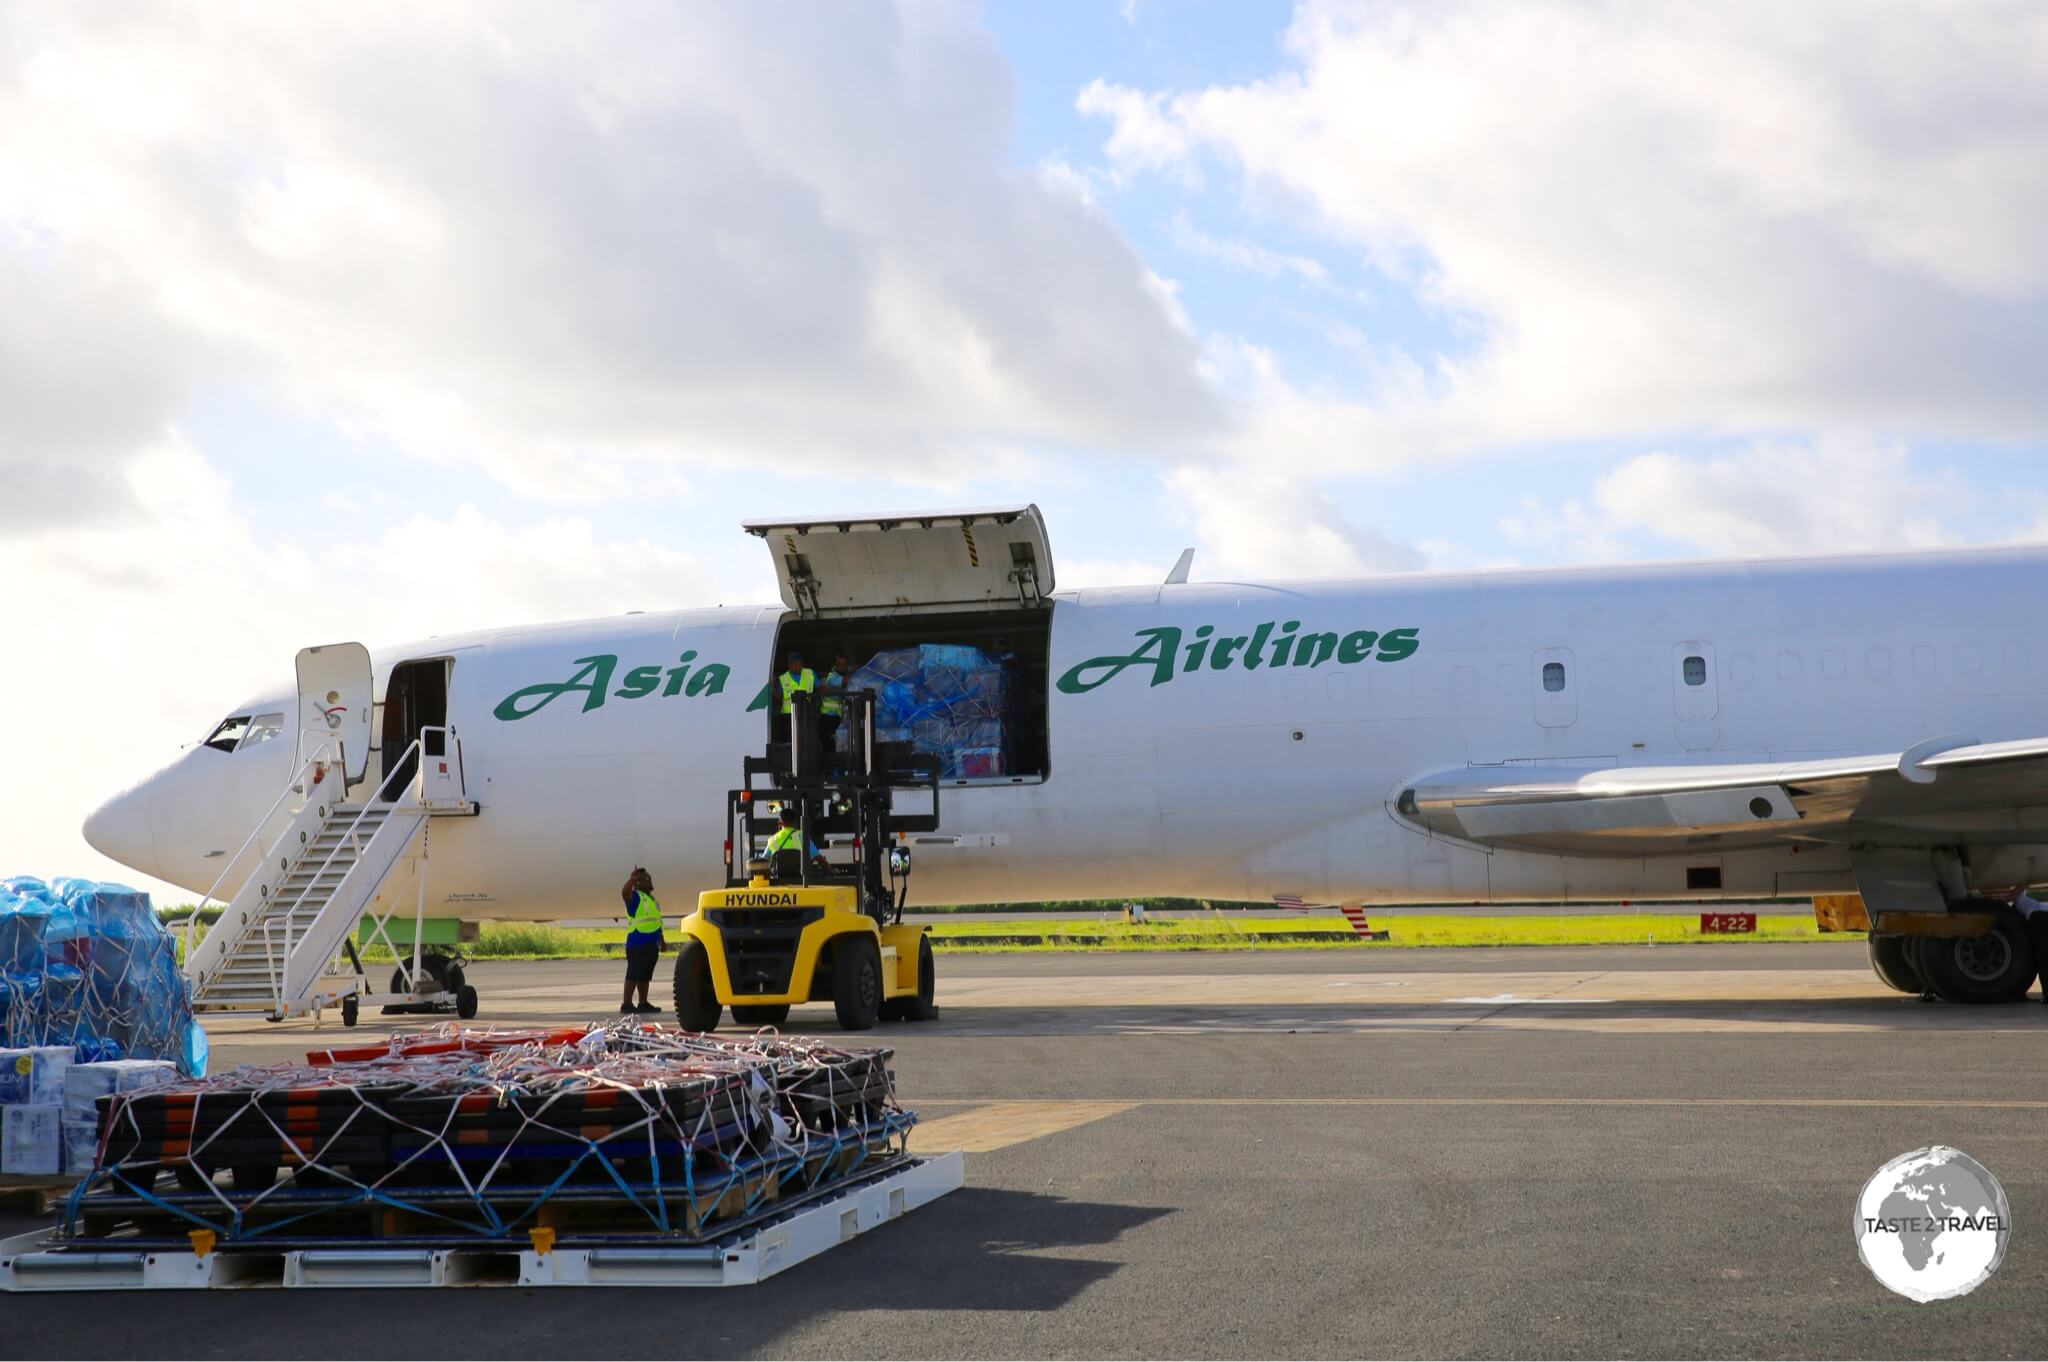 All freight in Micronesia arrives courtesy of two companies – Matson Shipping Line or Asia Pacific Airlines (seen here at Chuuk Airport).